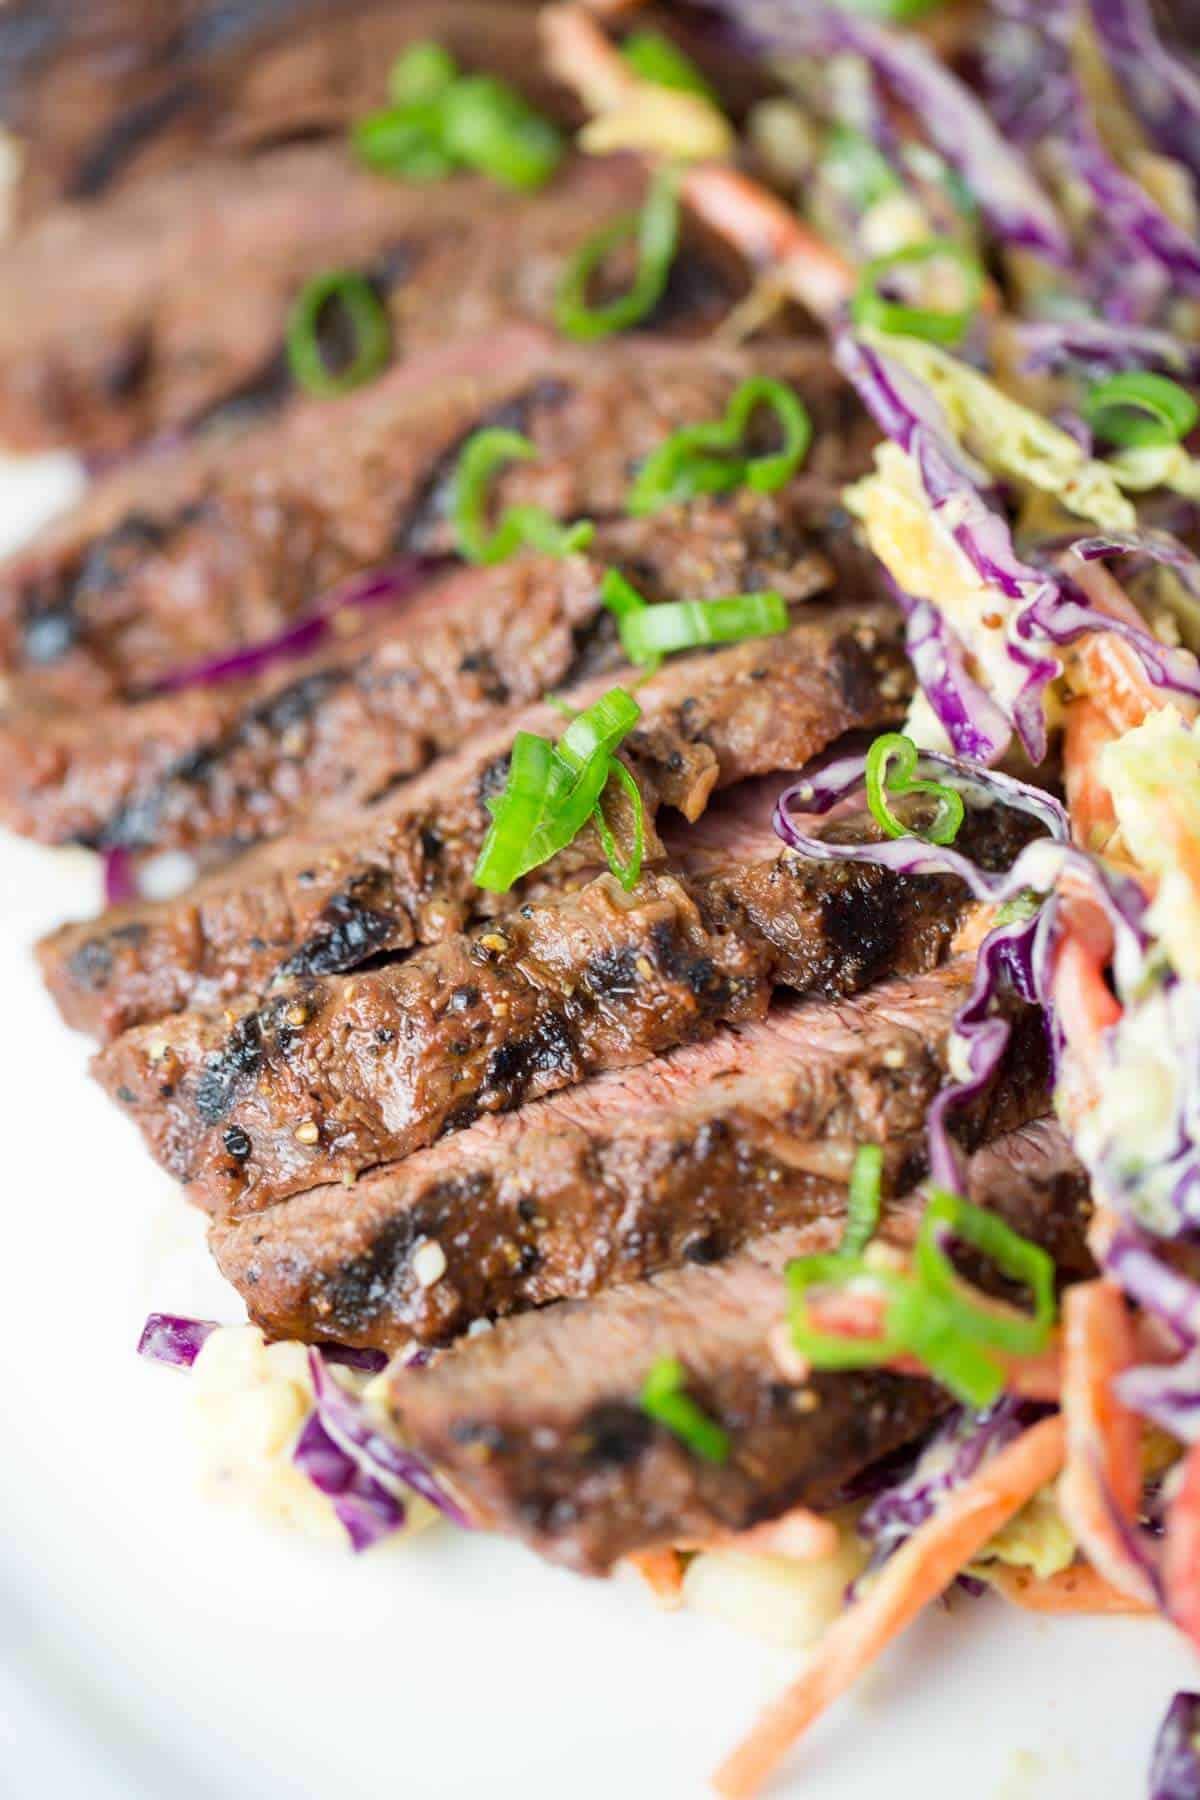 Grilled Flat Iron Steak with Marinade